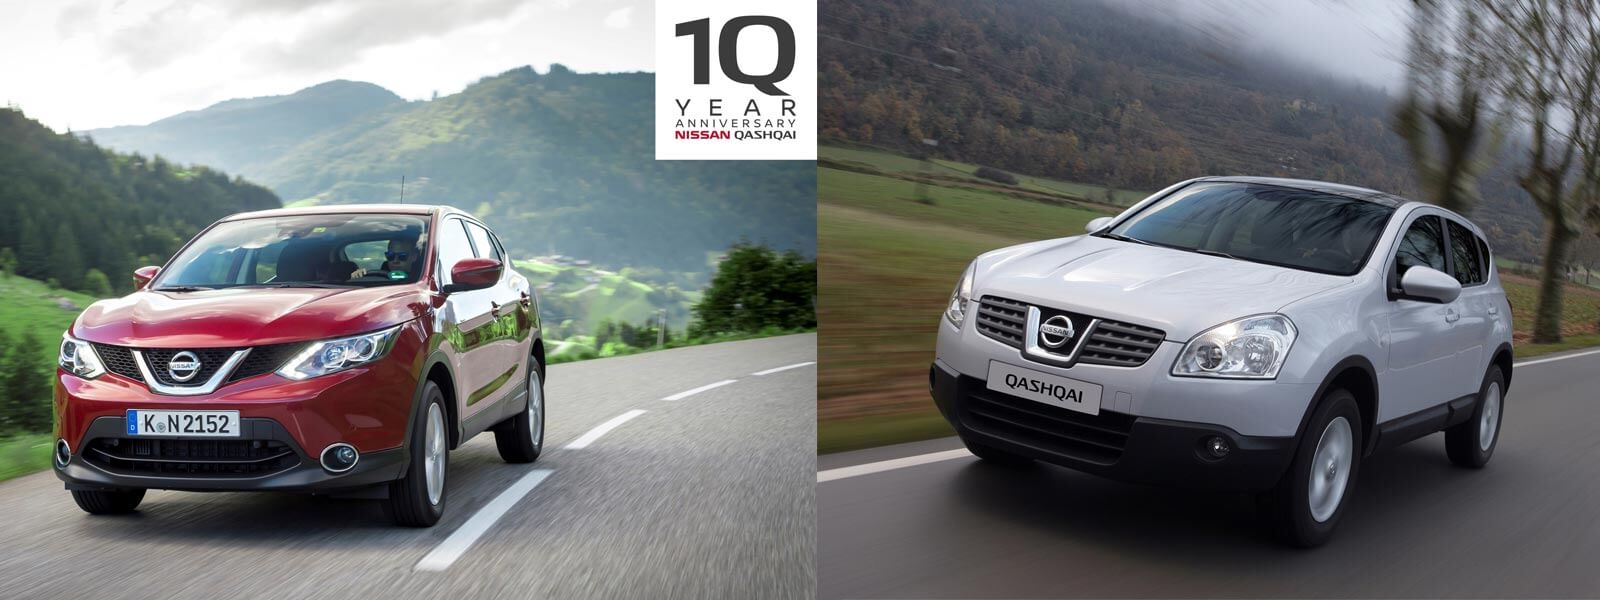 10 Years of Nissan Qashqai